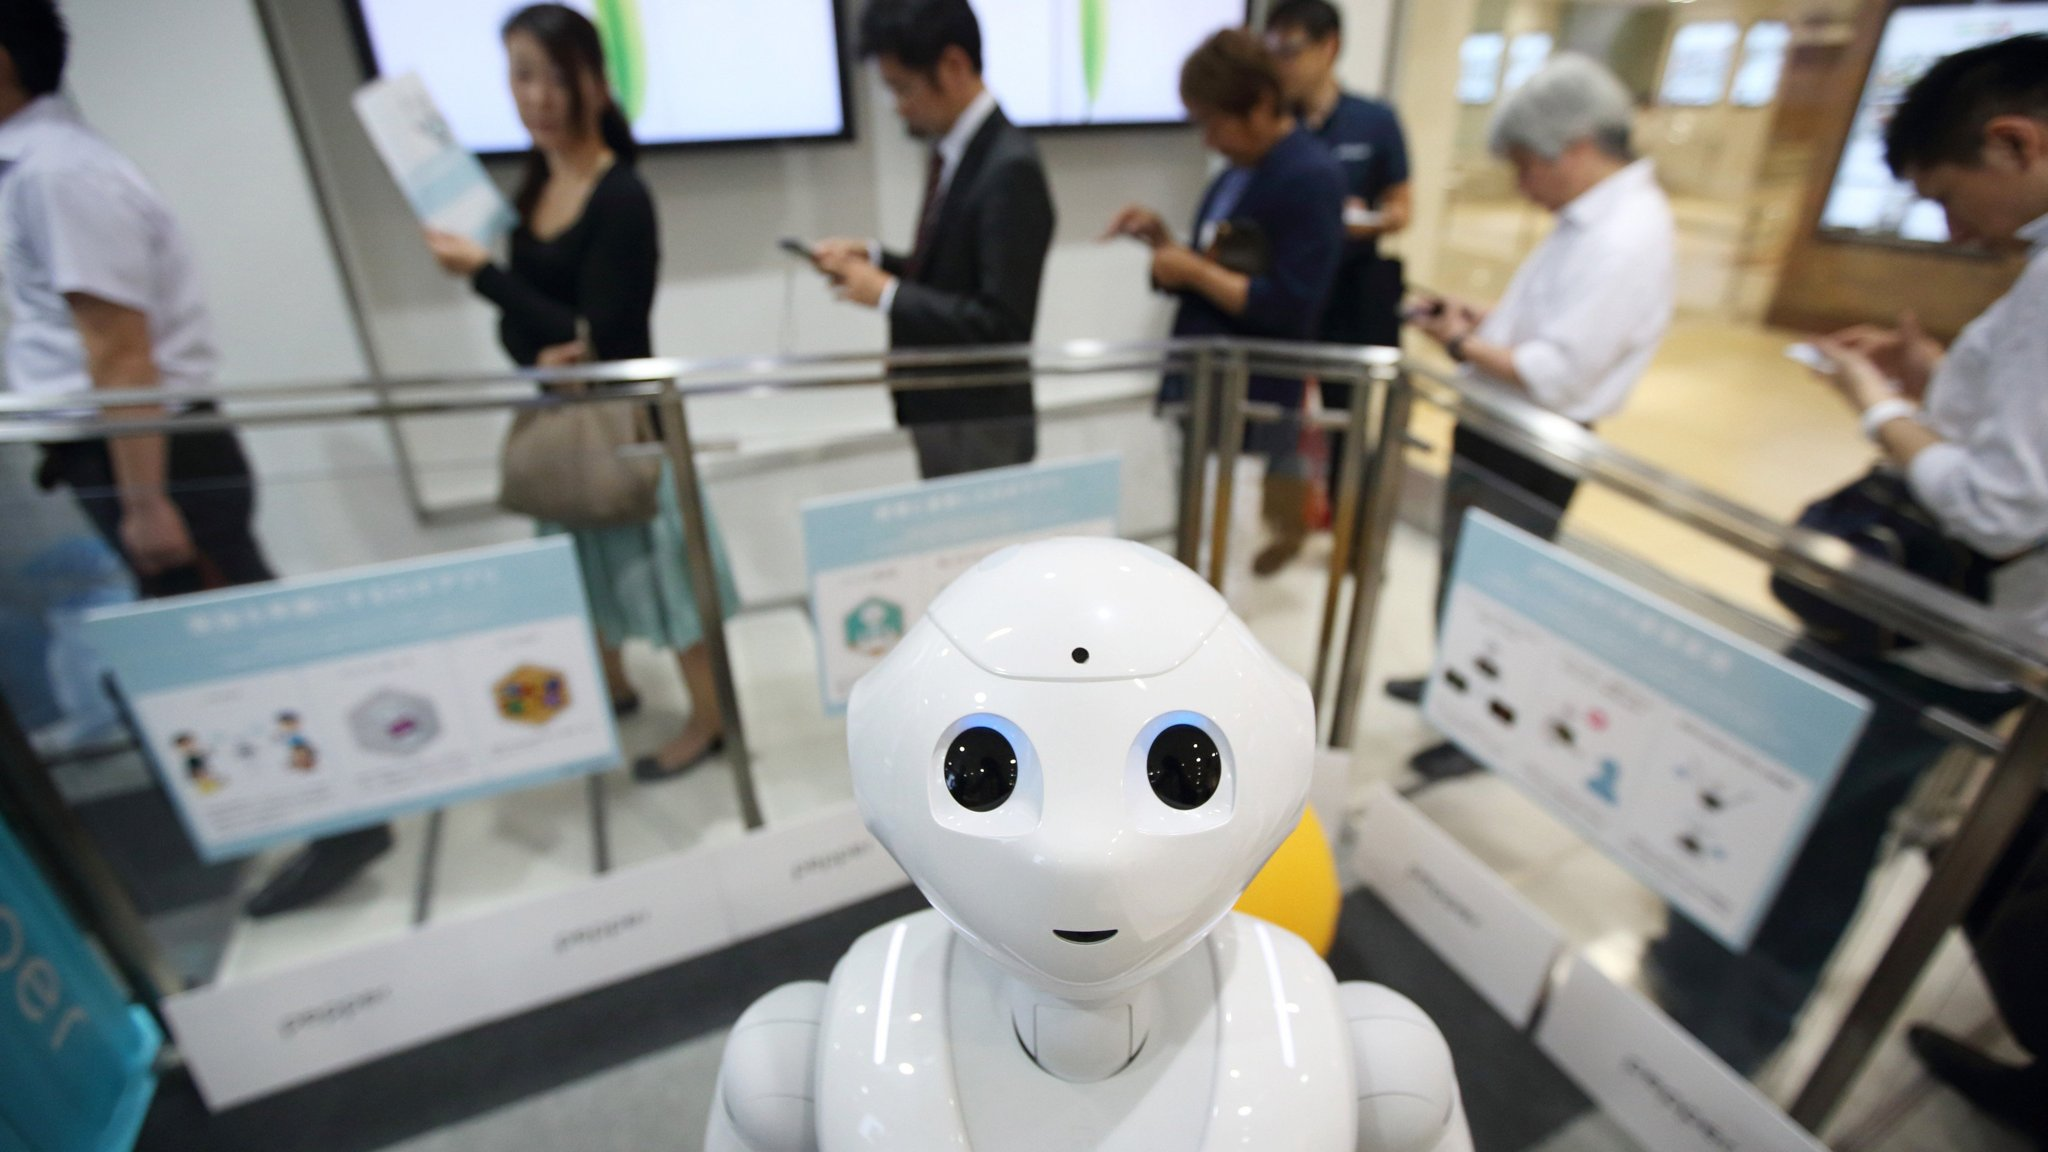 Customers stand in line behind SoftBank Corp.'s humanoid robot Pepper as they wait to pre-order the robot inside the company's store in Tokyo, Japan, on Friday, June 19, 2015. SoftBank will start sales of its Pepper robot to consumers Saturday in a bid to spur adoption. Photographer: Tomohiro Ohsumi/Bloomberg